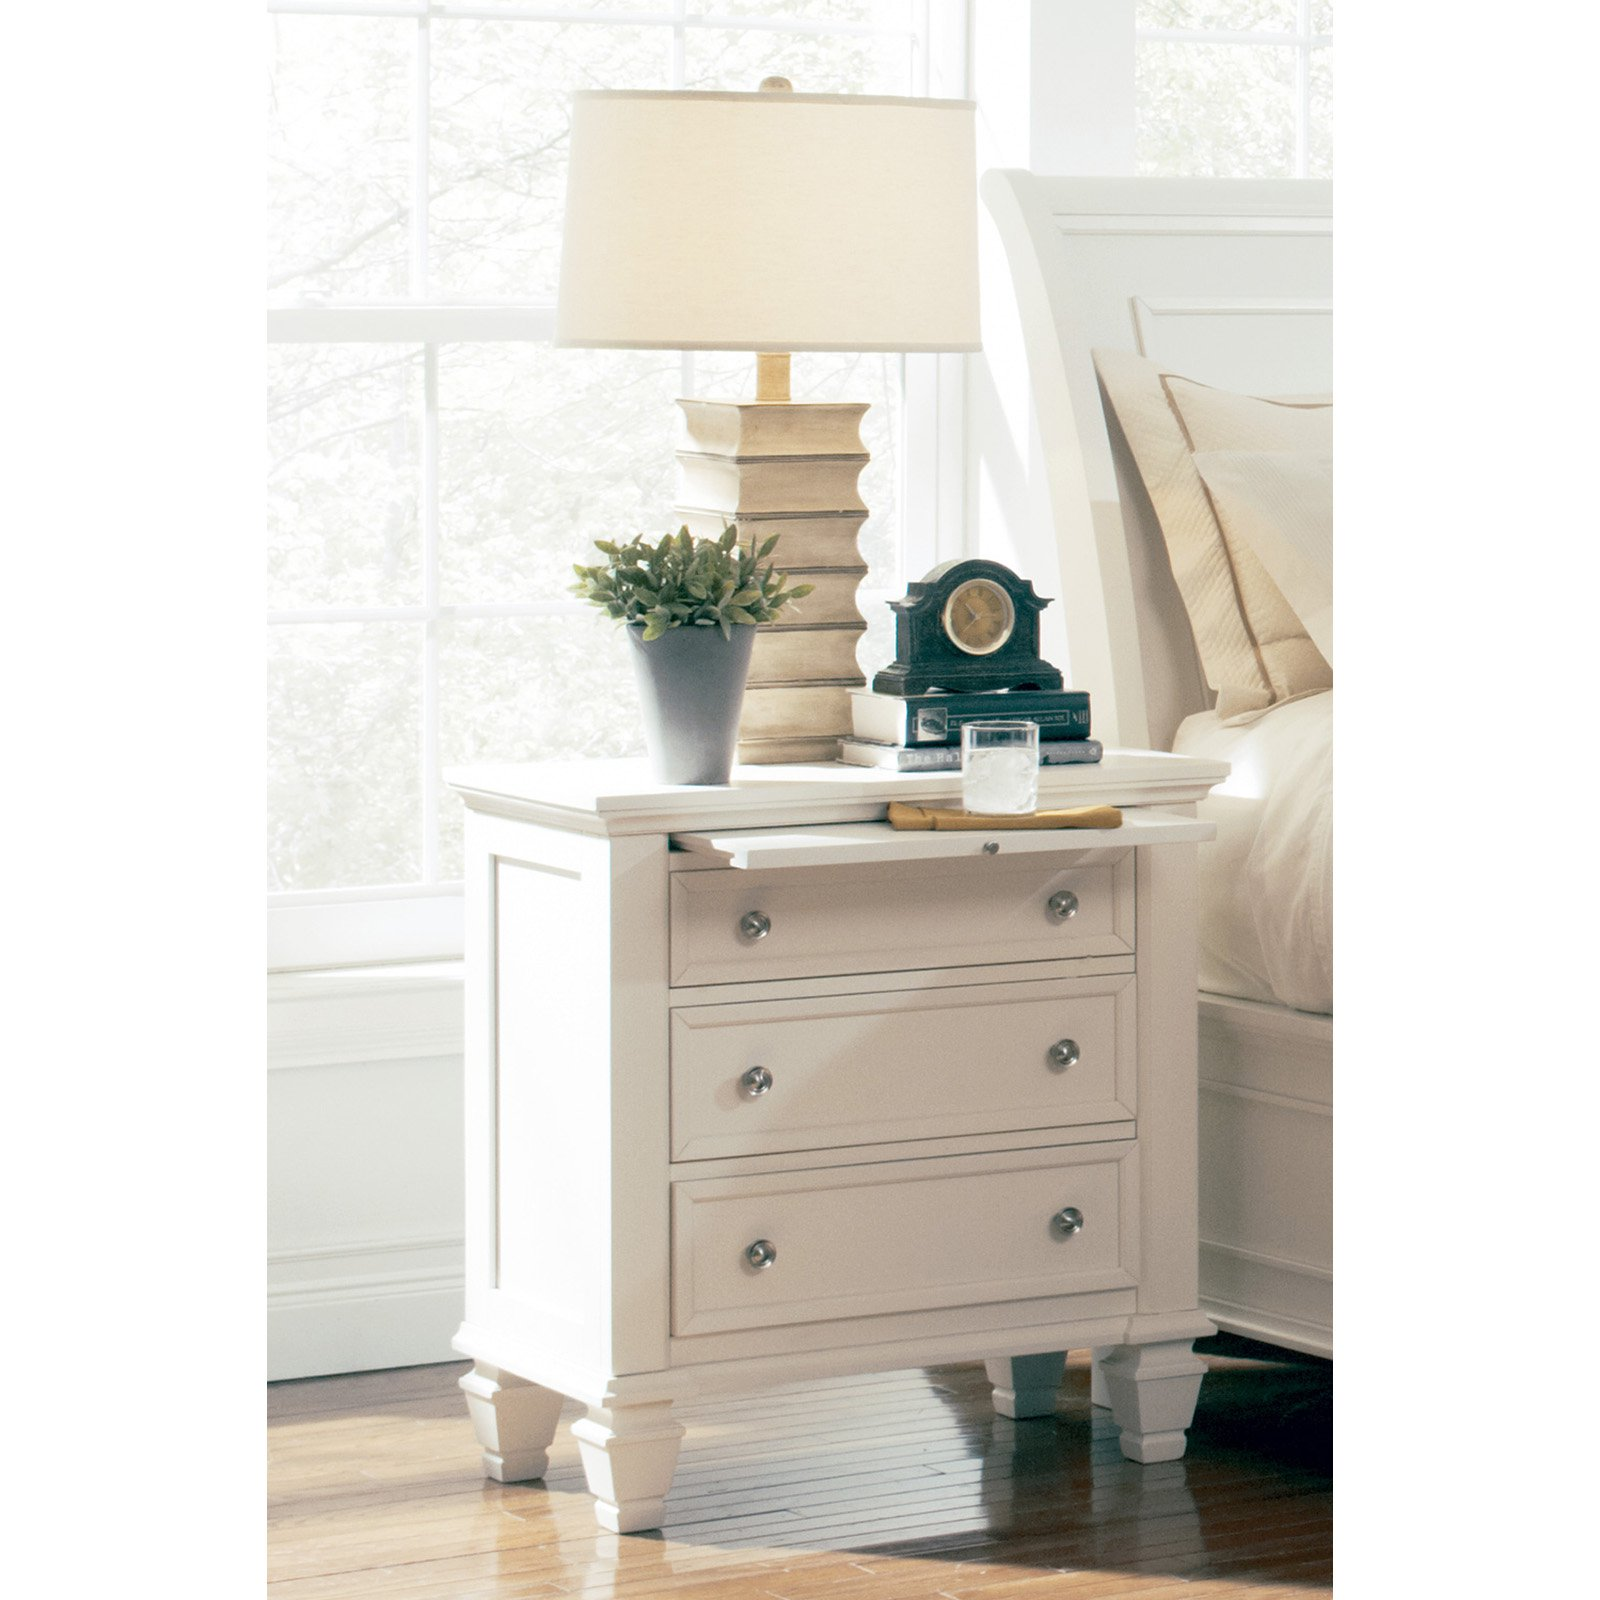 Coaster Company Sandy Beach 3 Drawer Nightstand, White